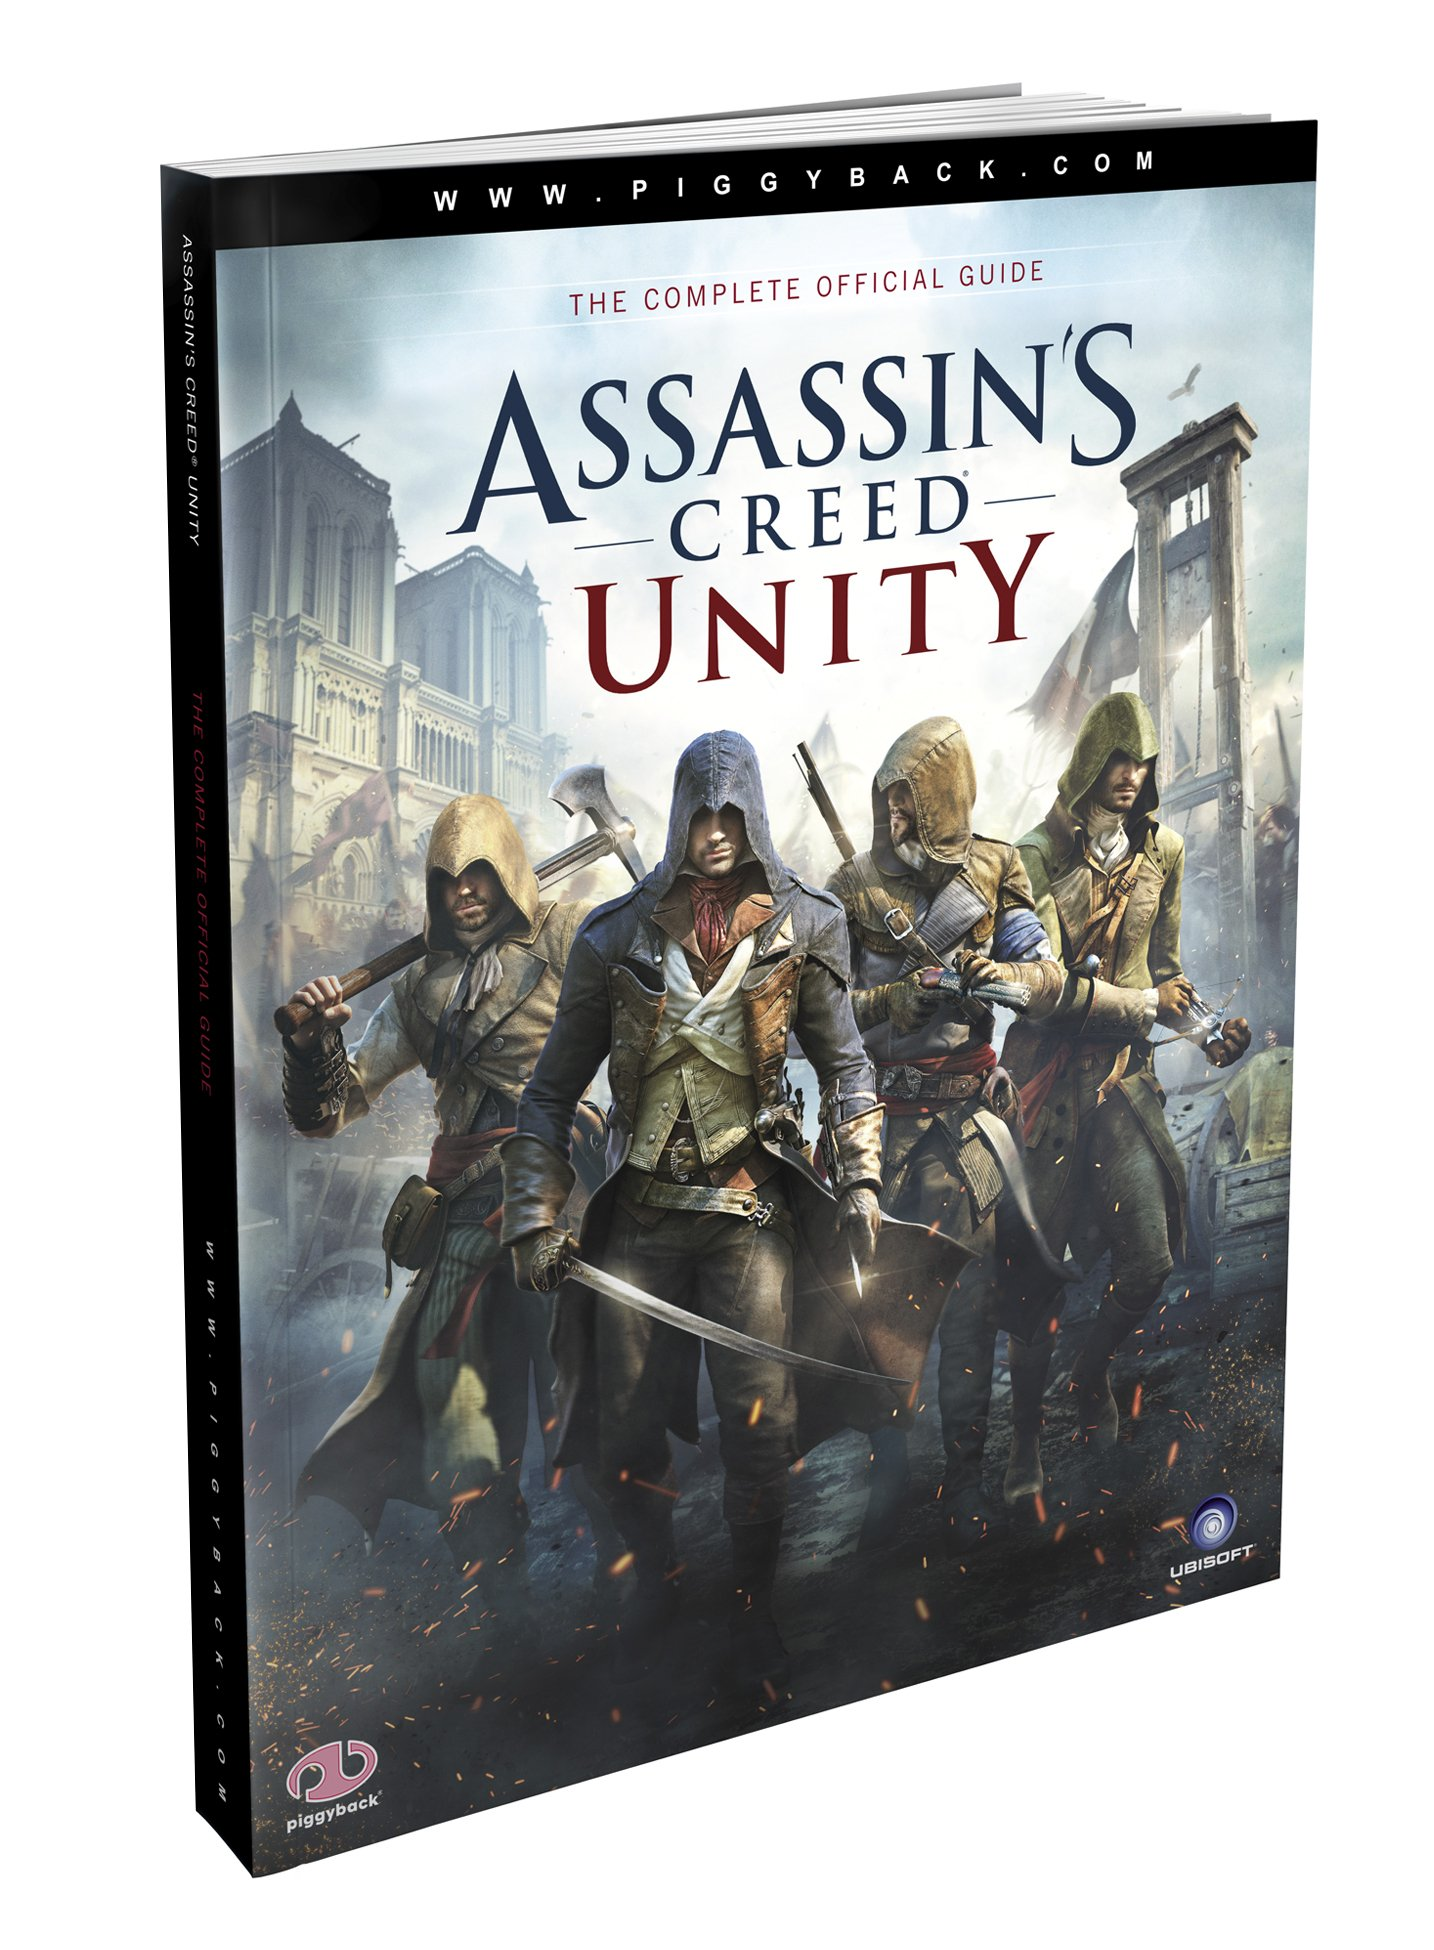 assassins creed unity sequence 3 memory 1 save game download